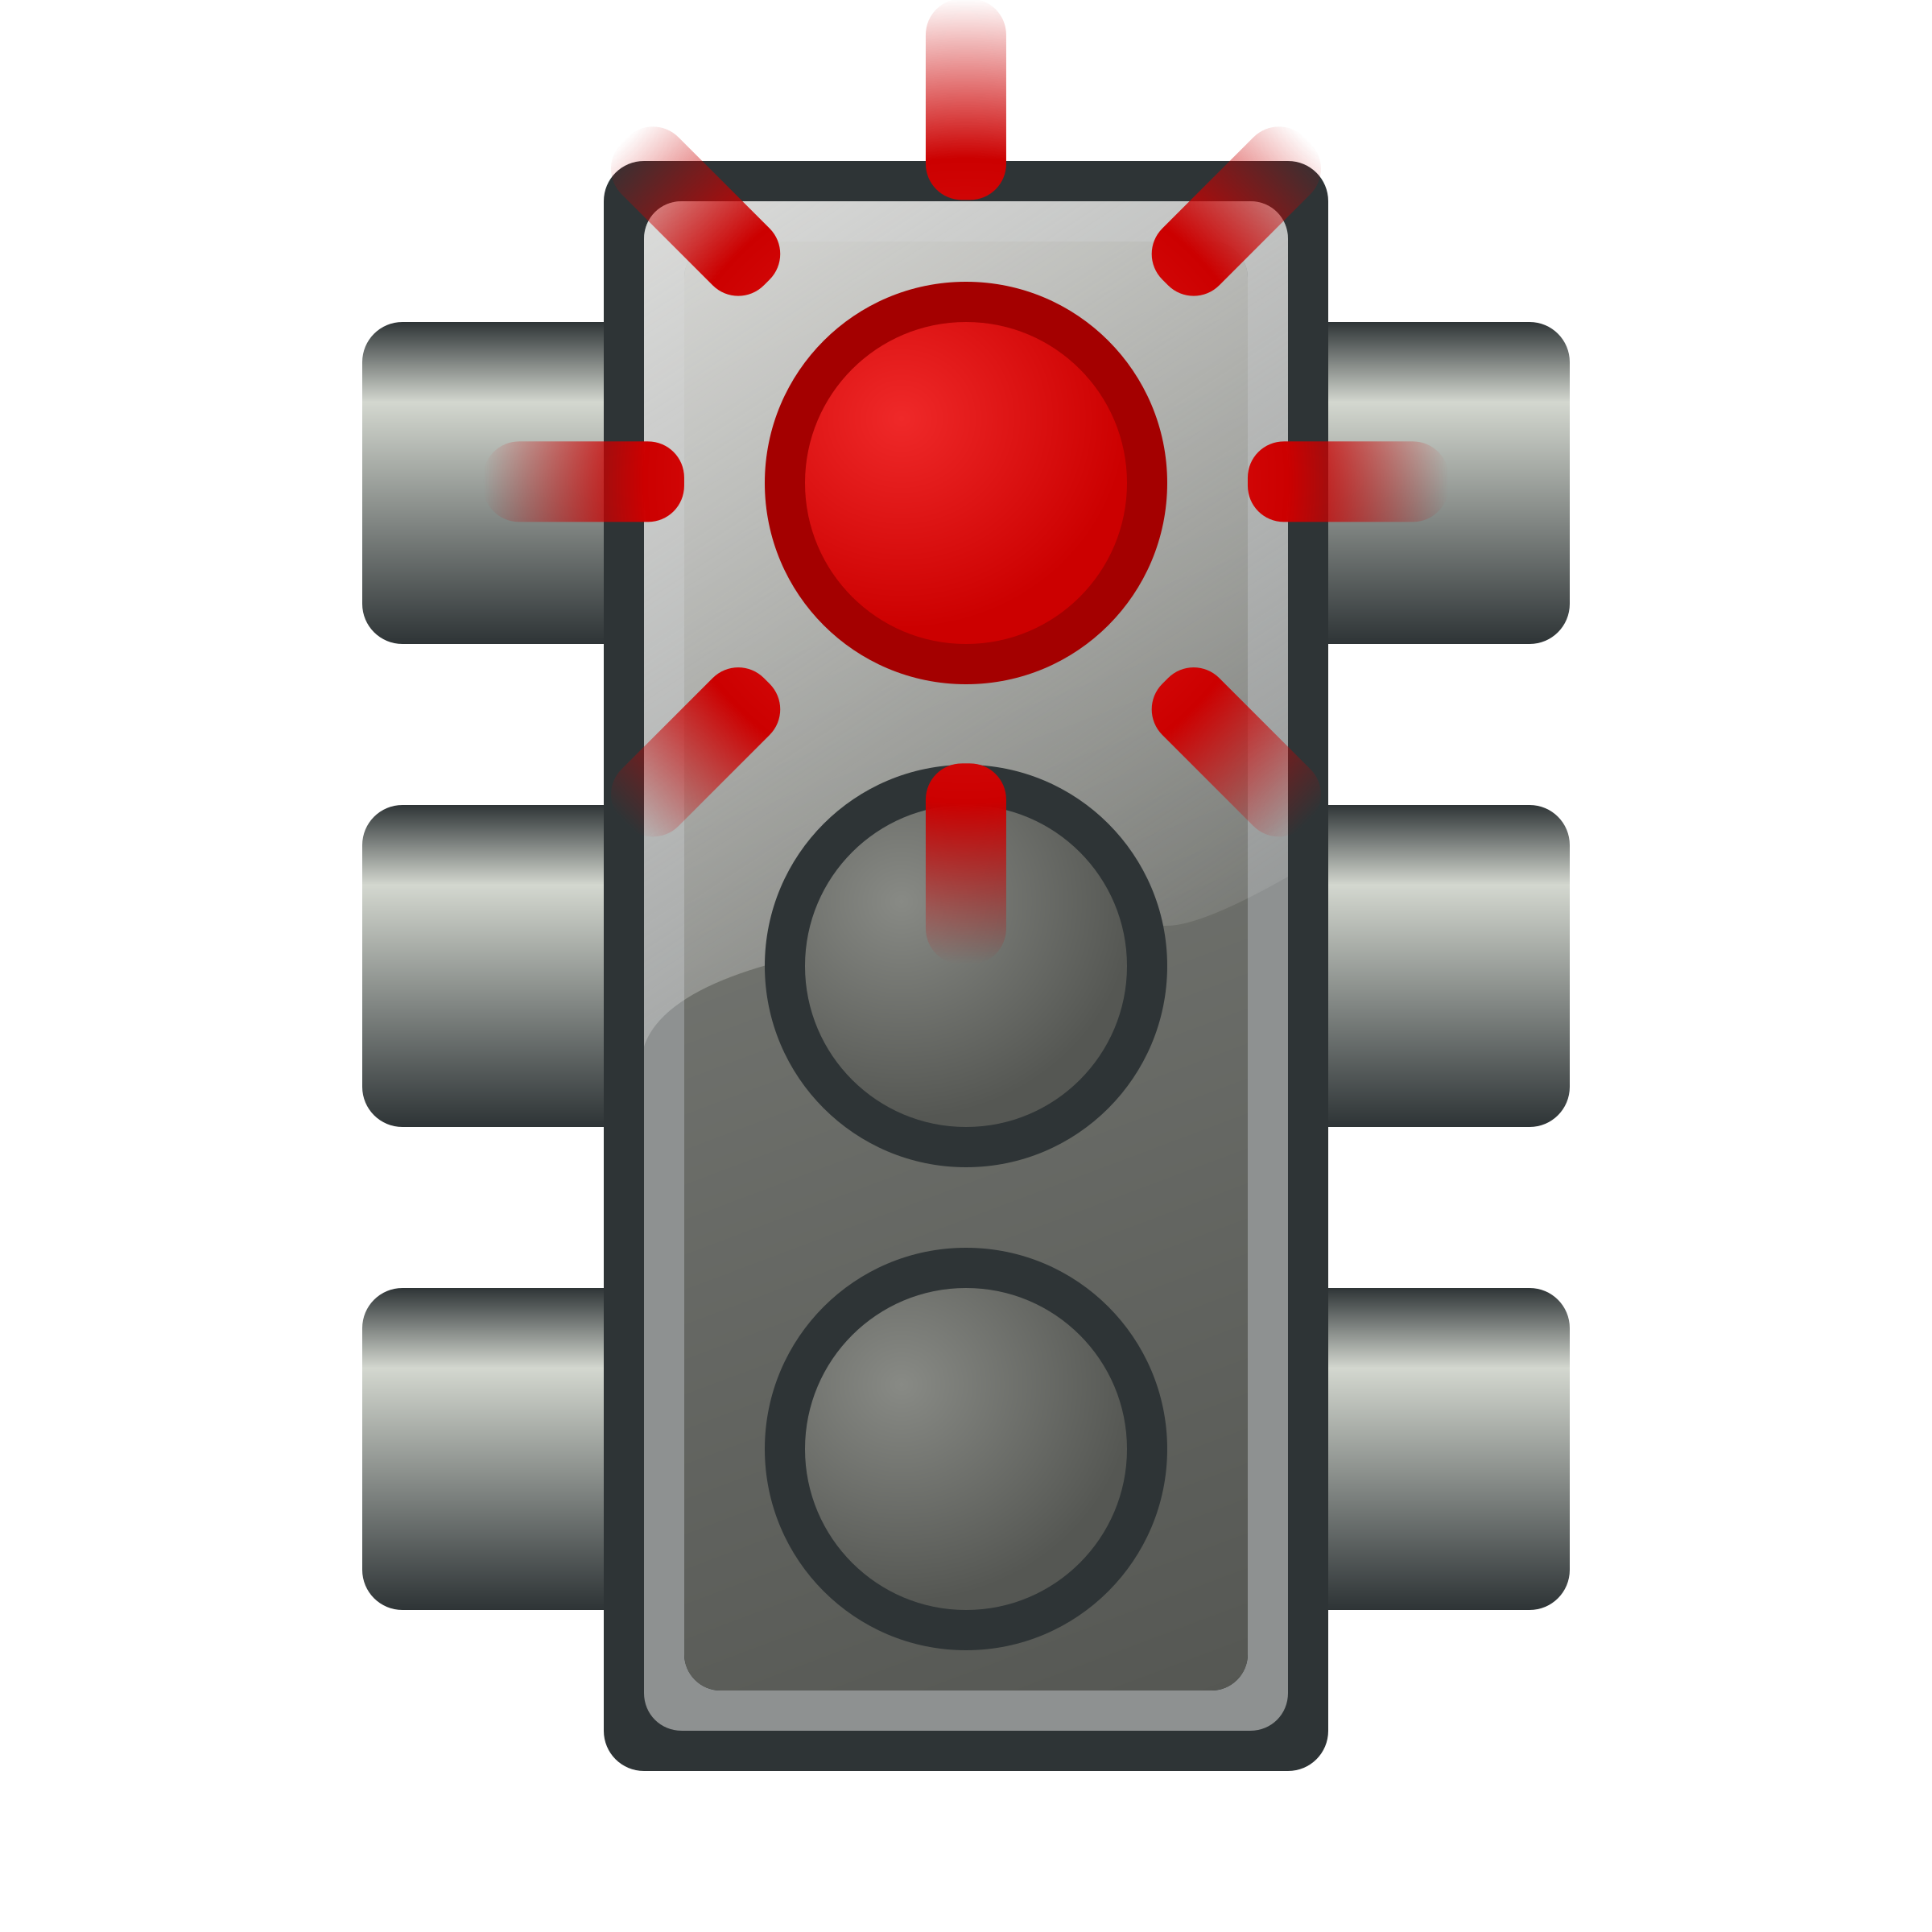 Flashing red traffic light by jhnri4